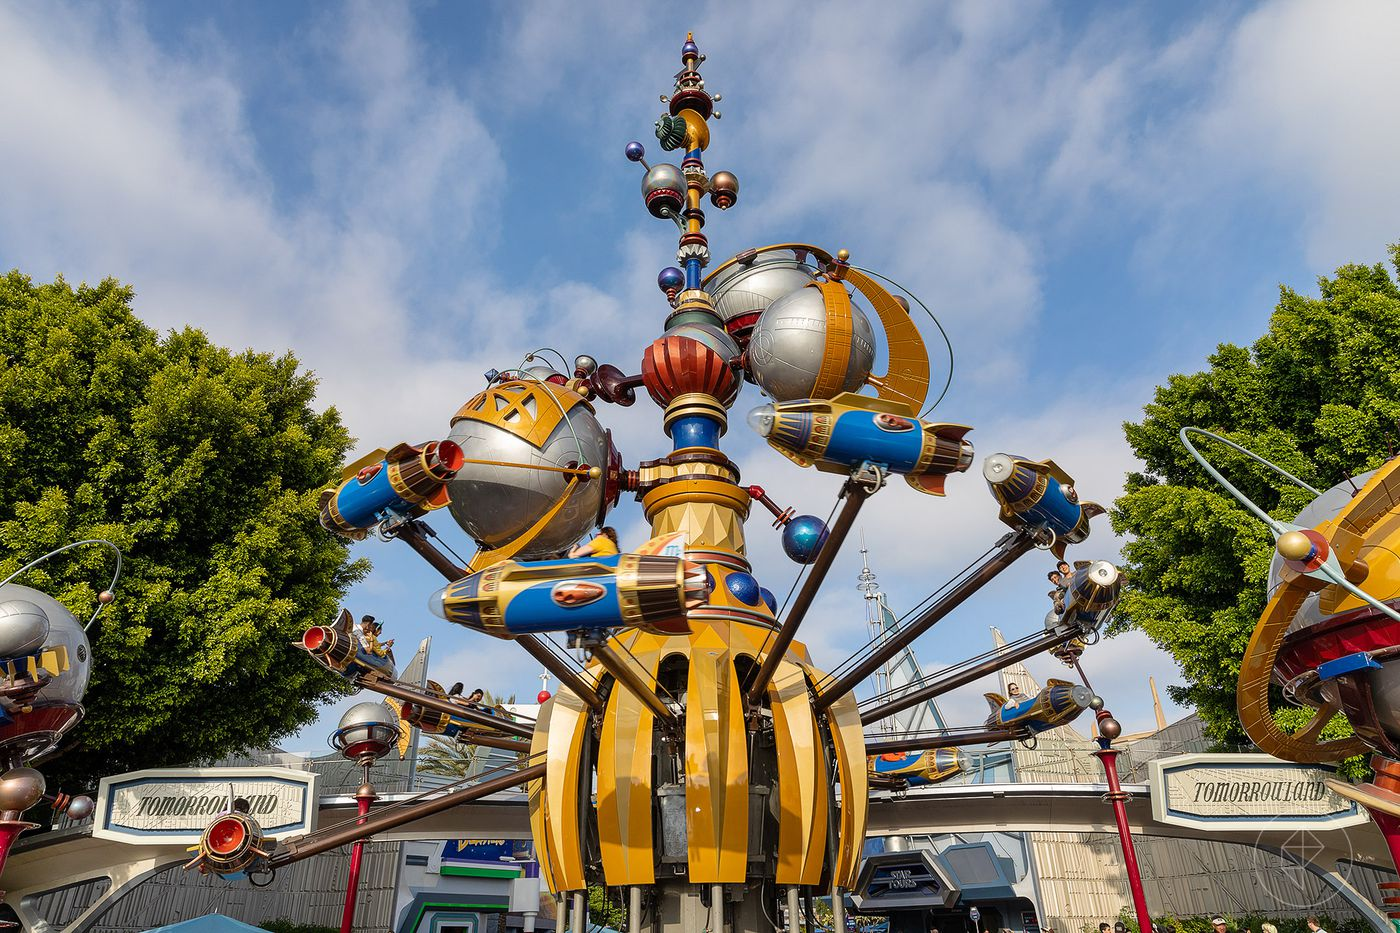 Disneyland review: the iconic theme park in the Star Wars